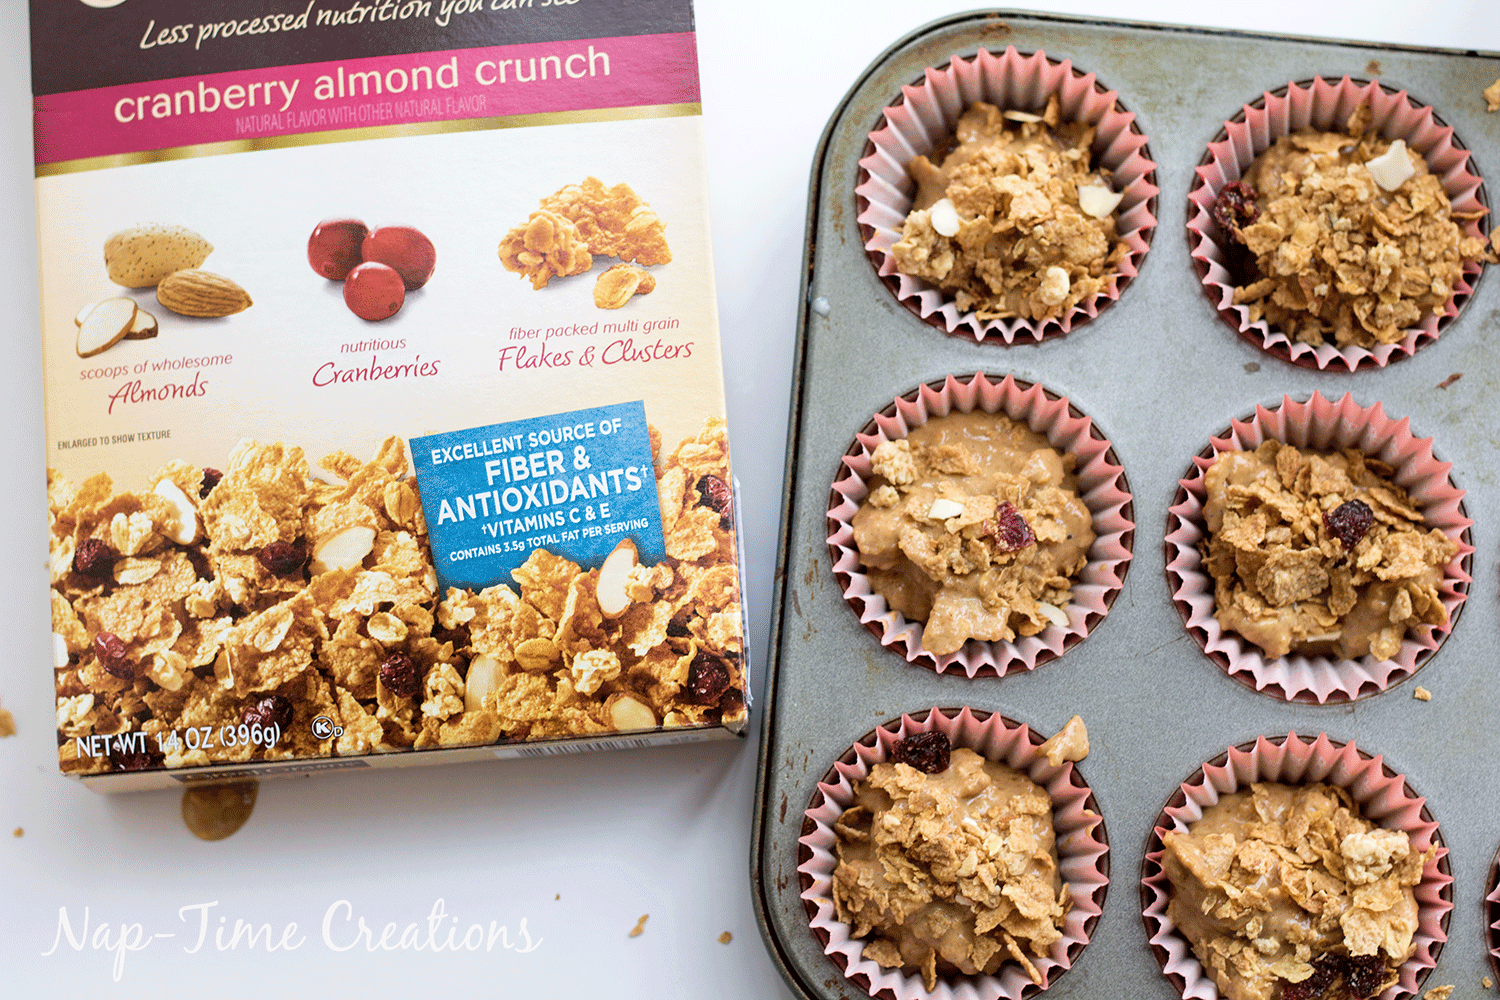 Great-Grains-Cereal-Muffins_9